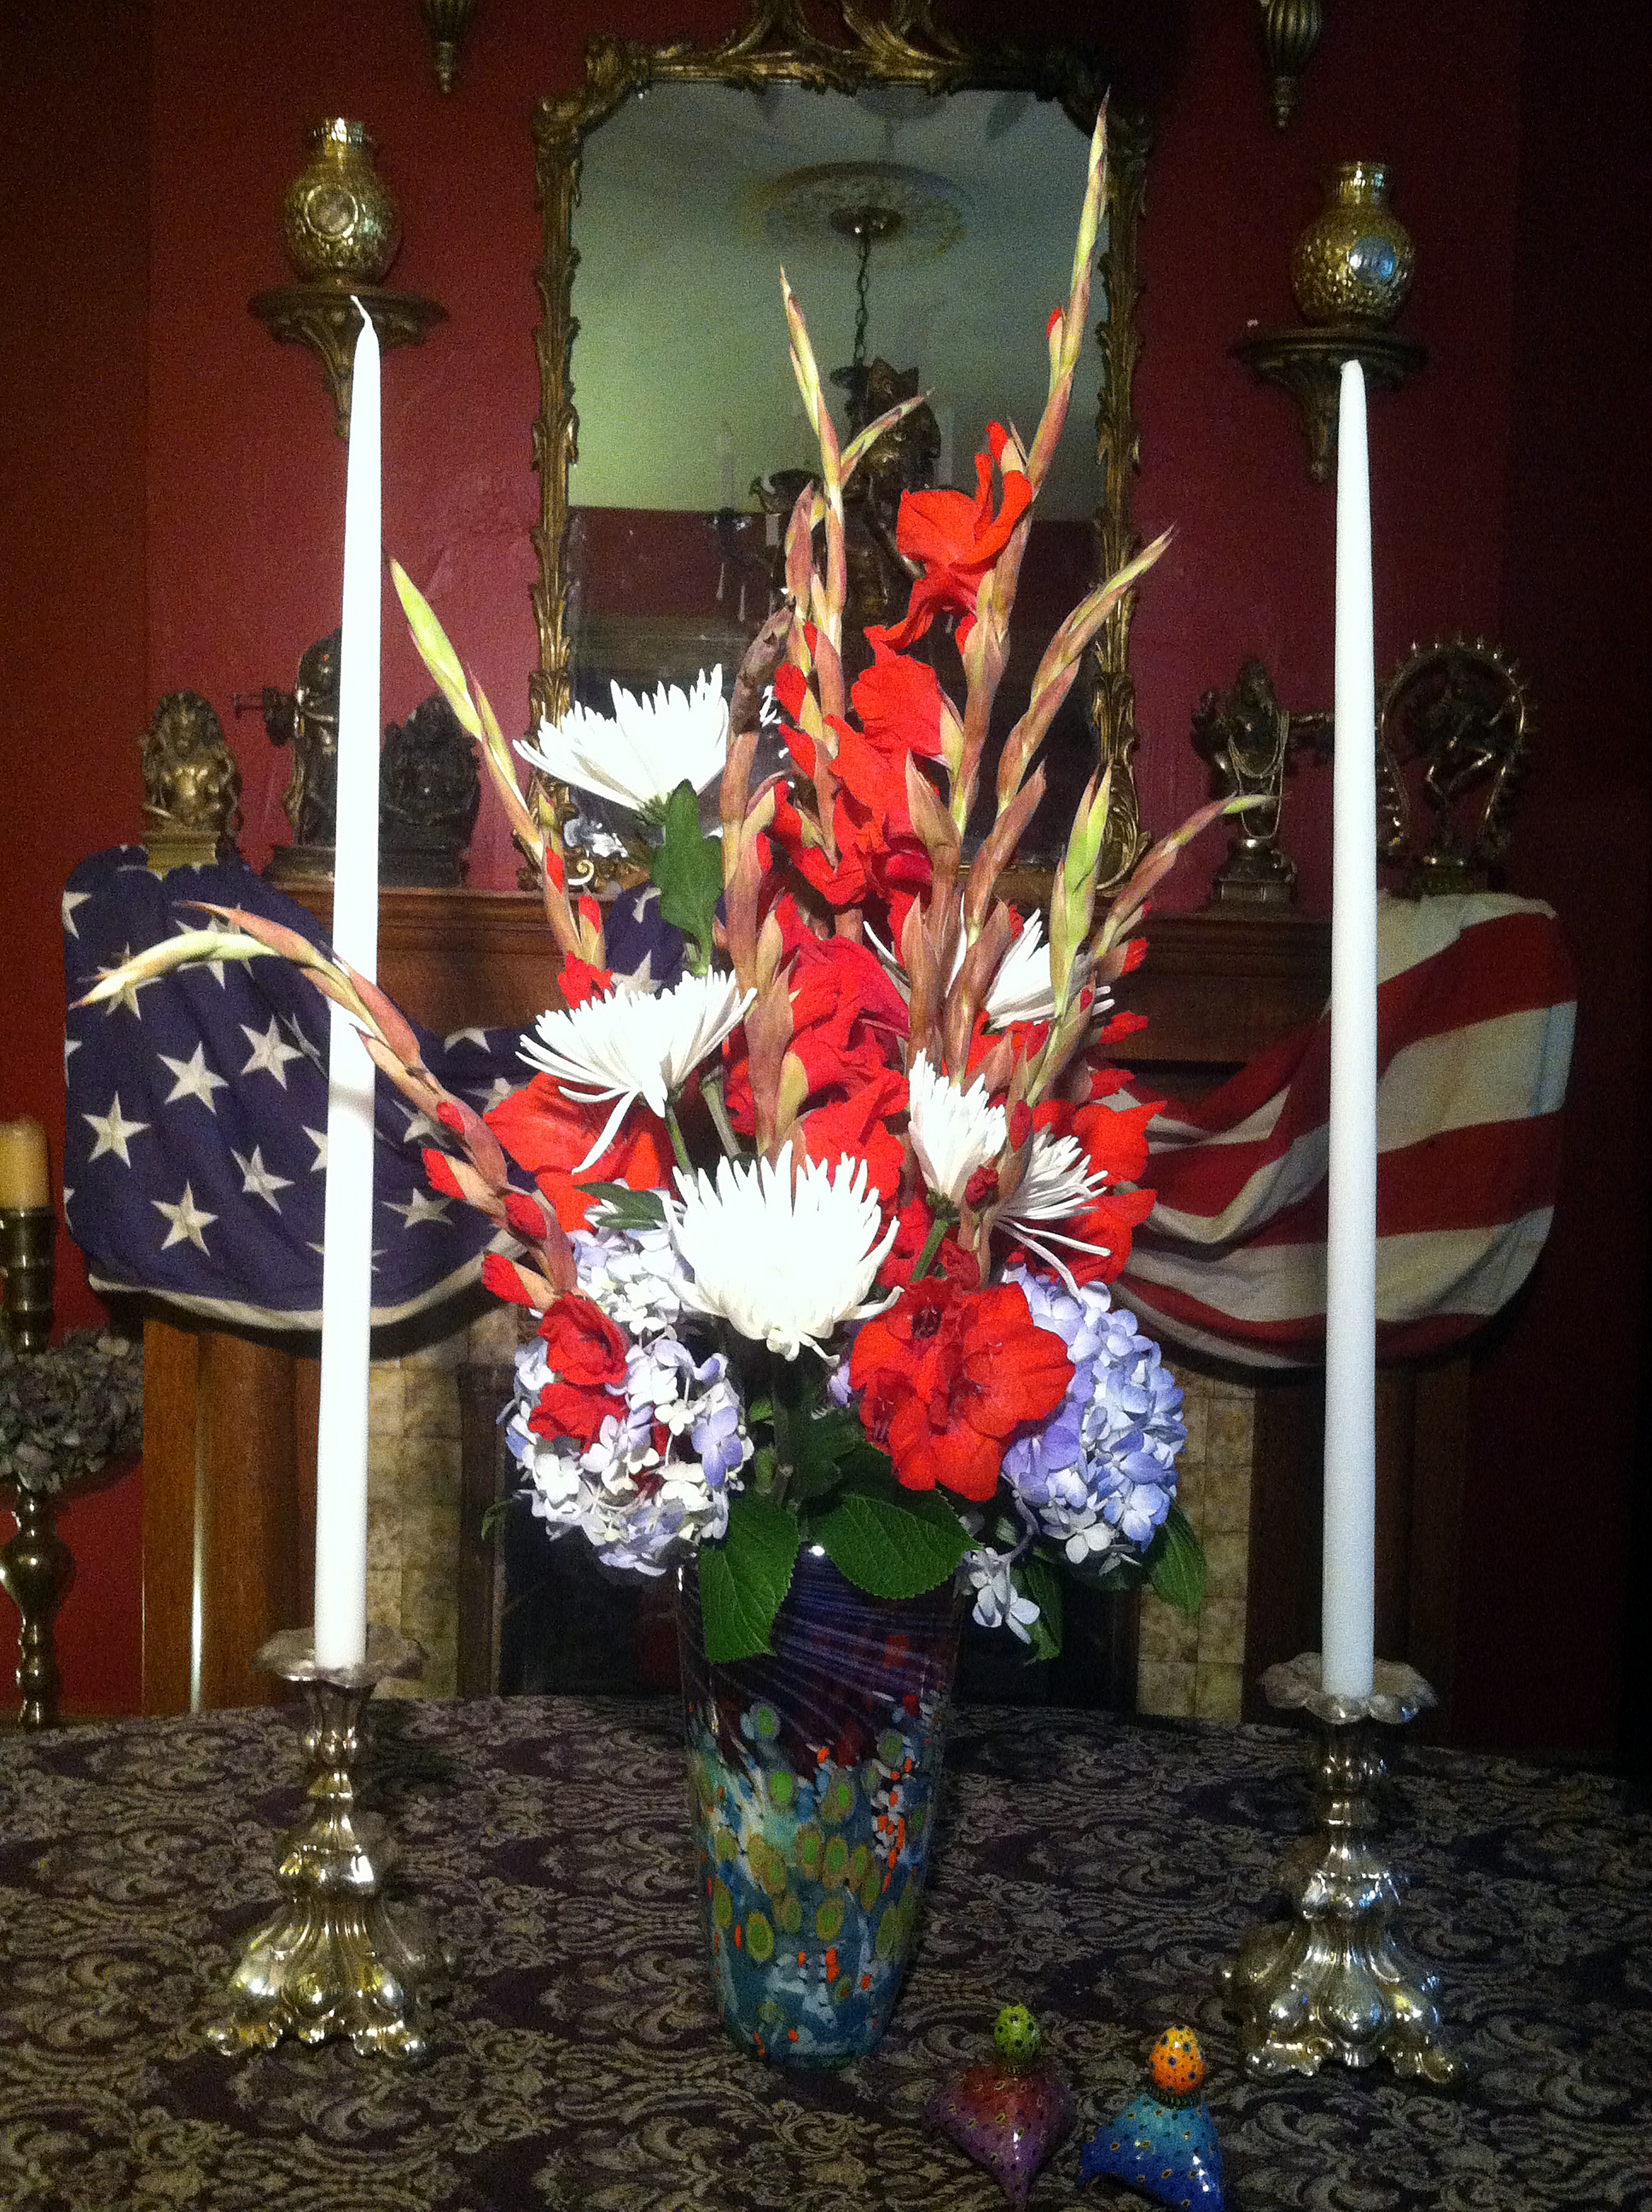 A how to diy stunning star spangled 4th of july fresh flower julyflowersdone2 izmirmasajfo